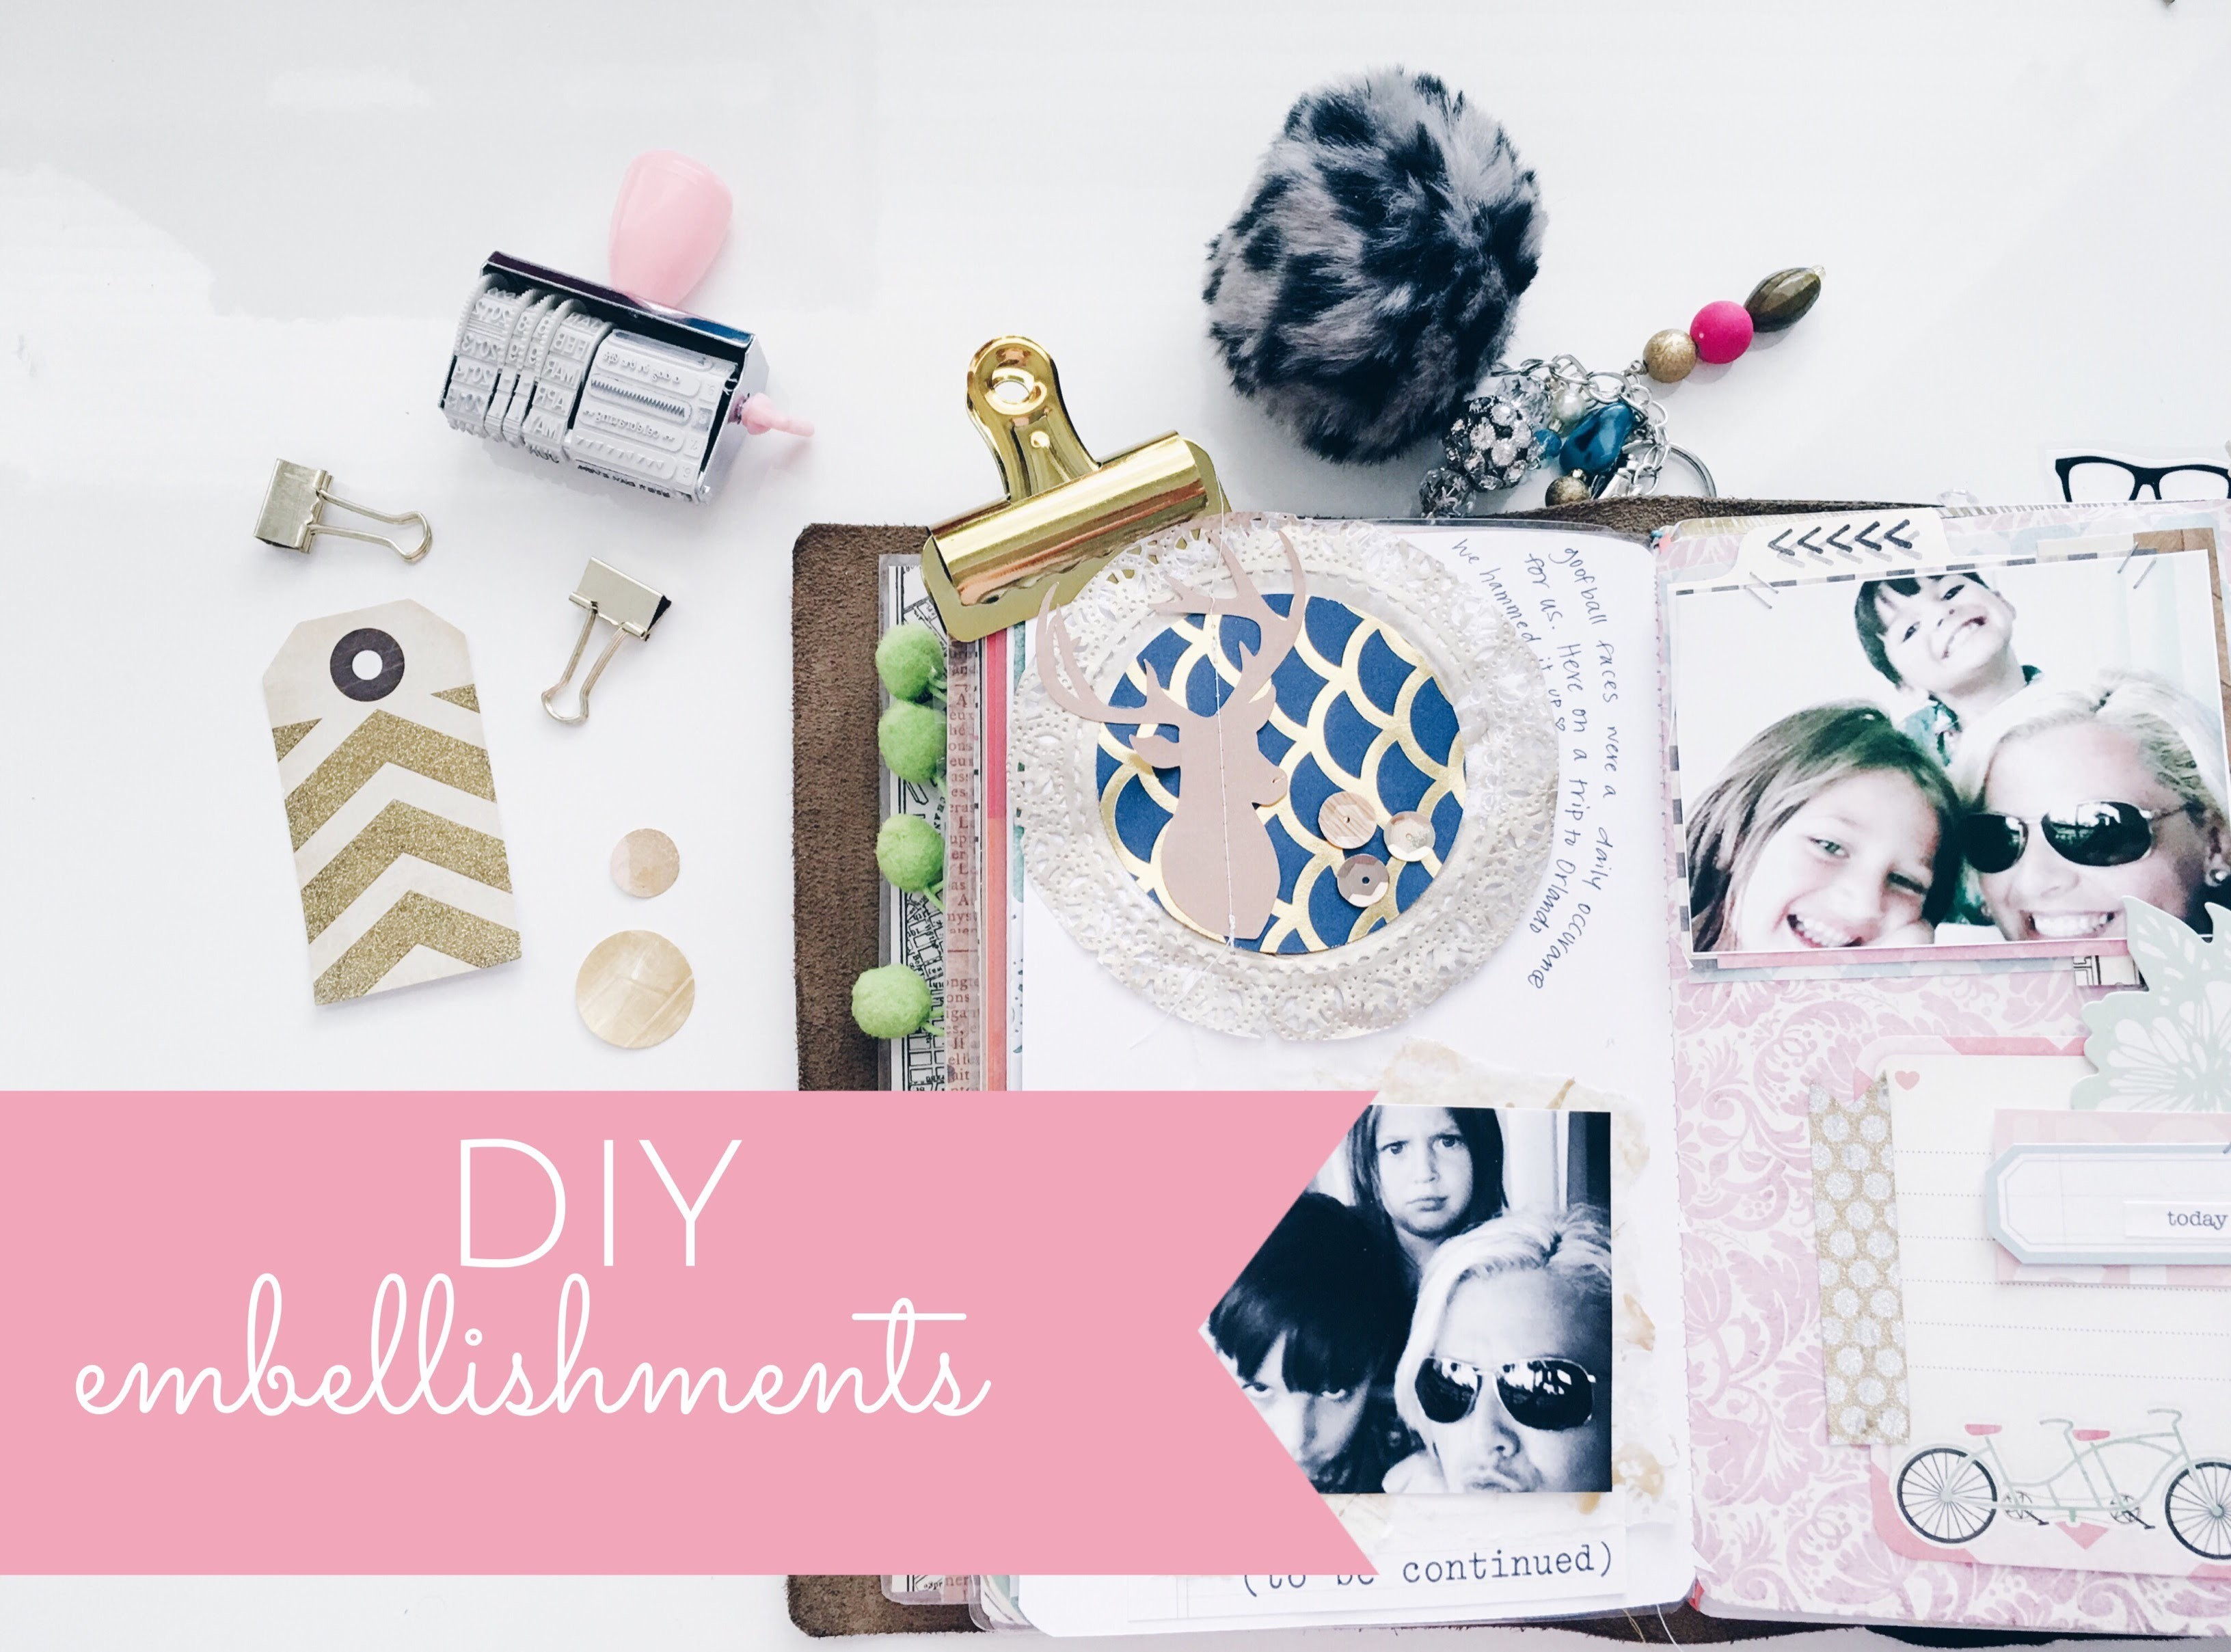 DIY embellishments using SCRAPS {DOILIES}